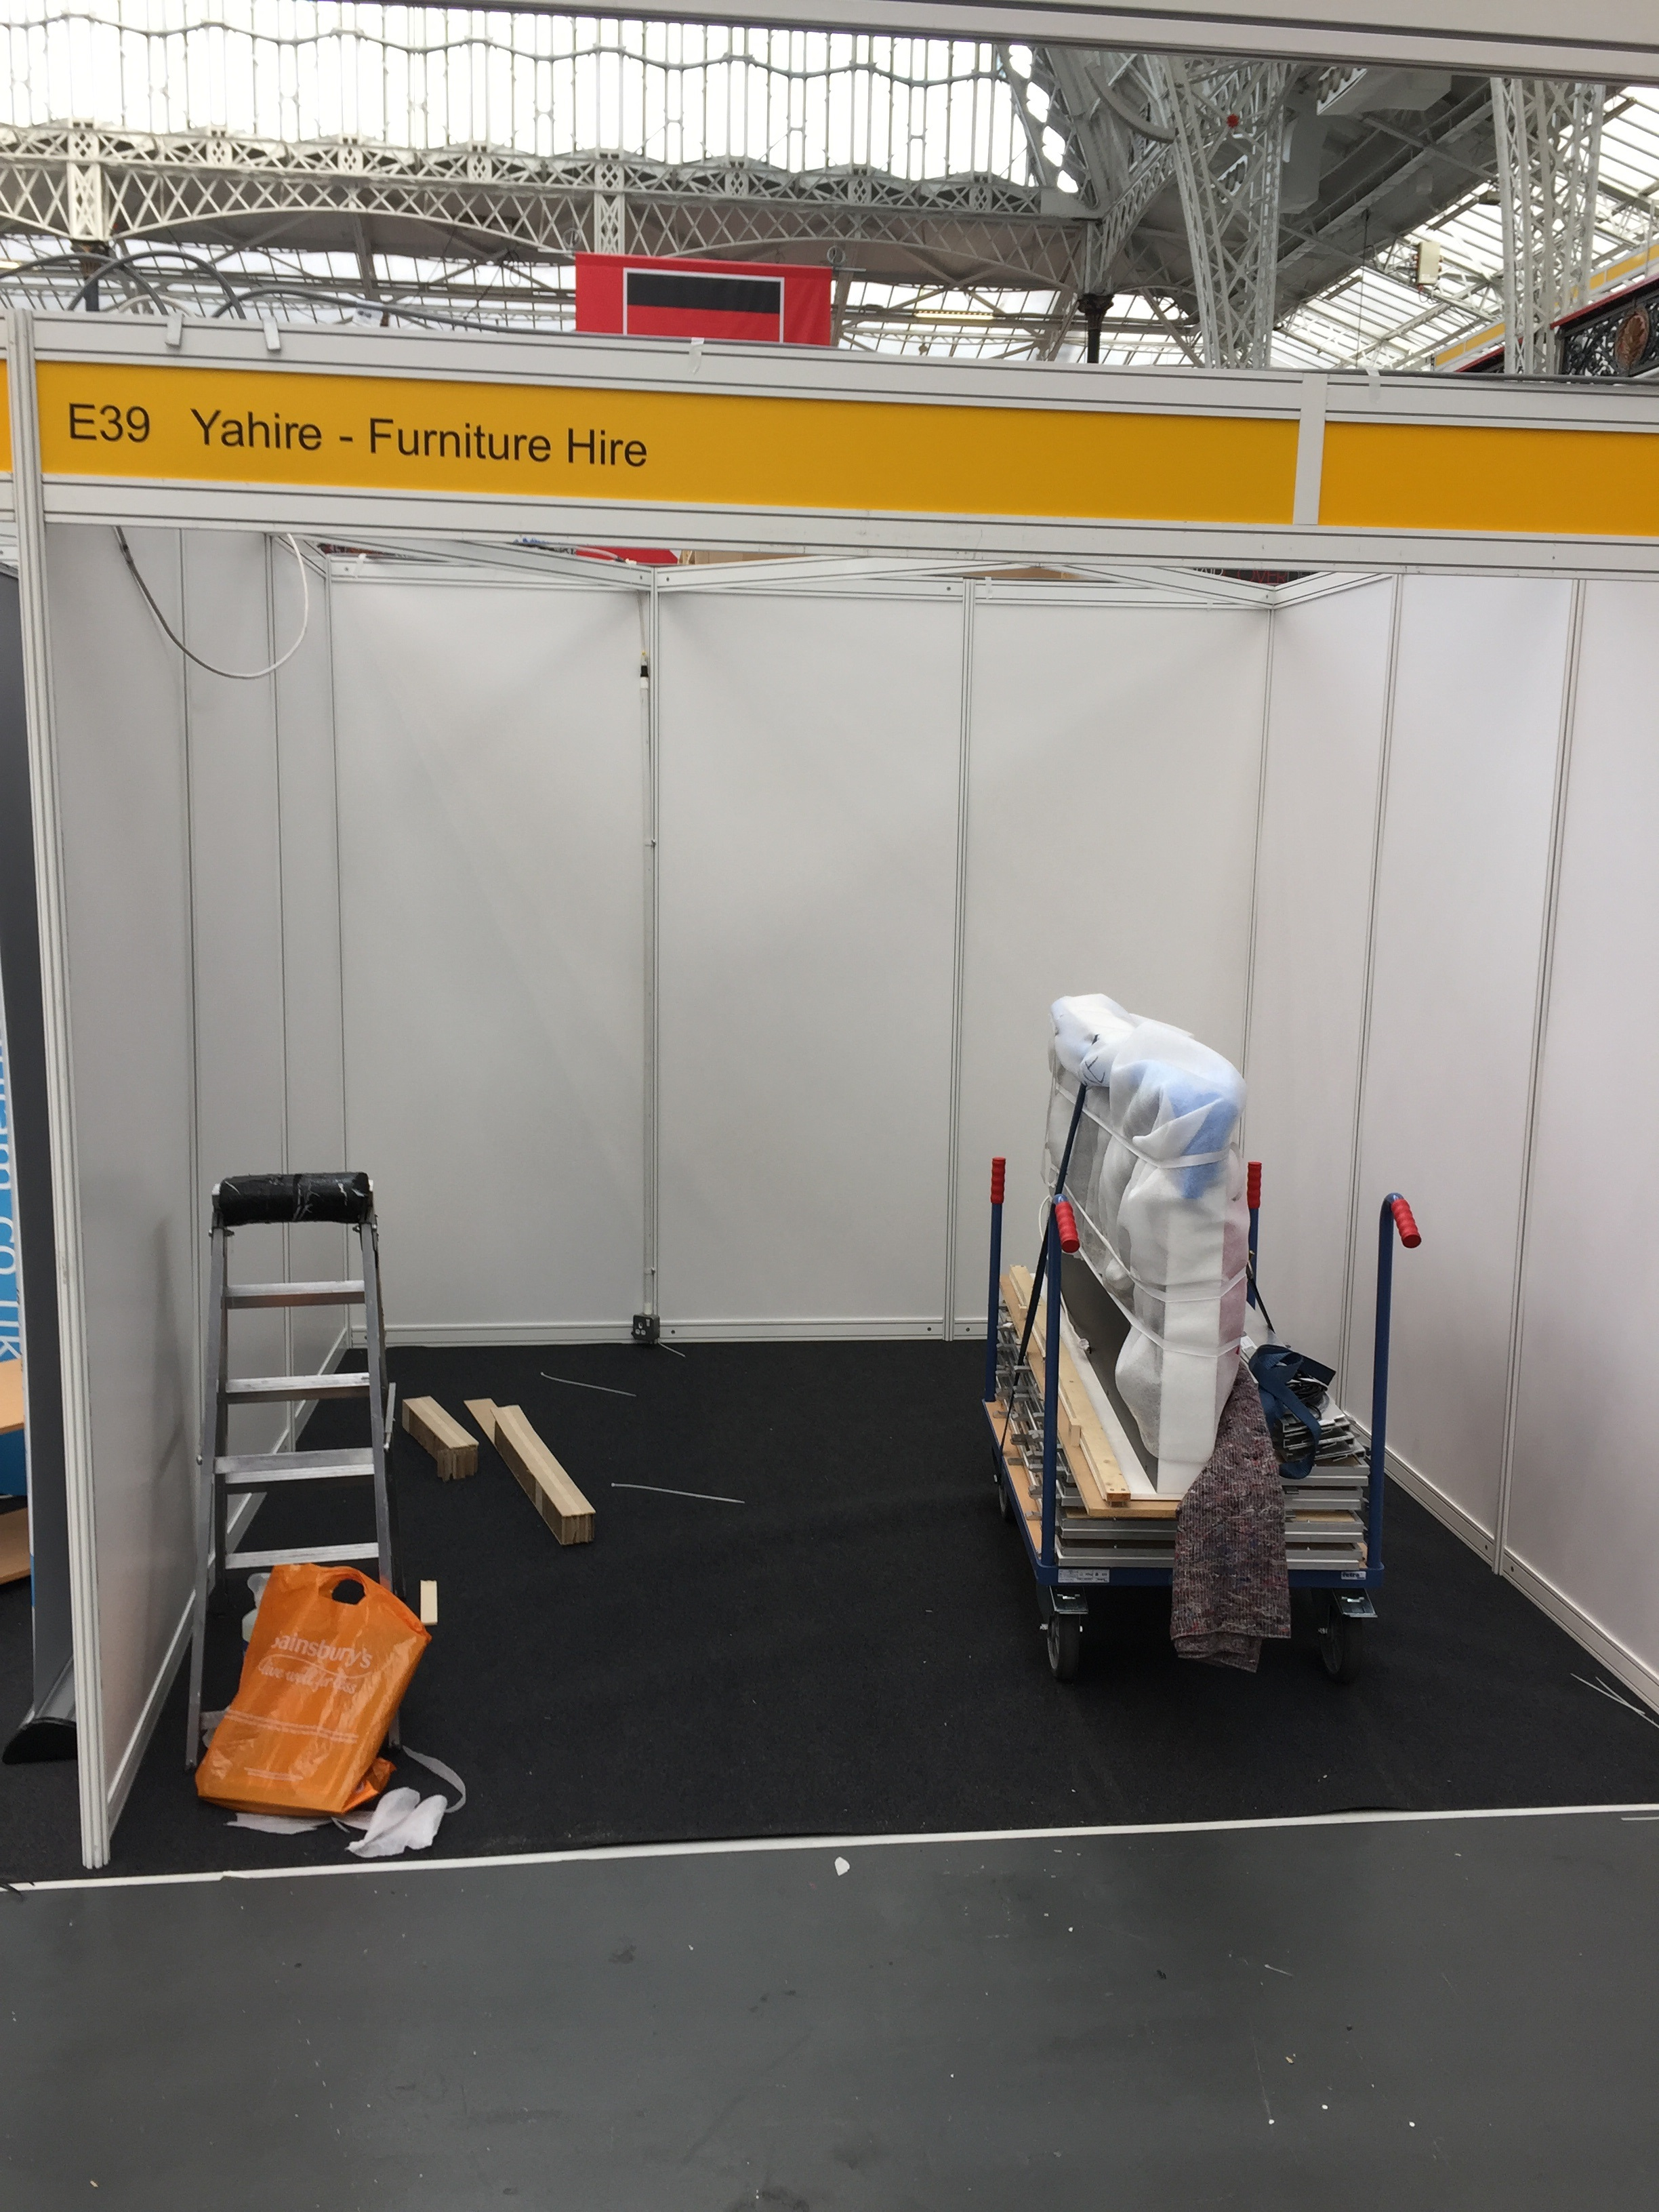 Images of our stand before setup